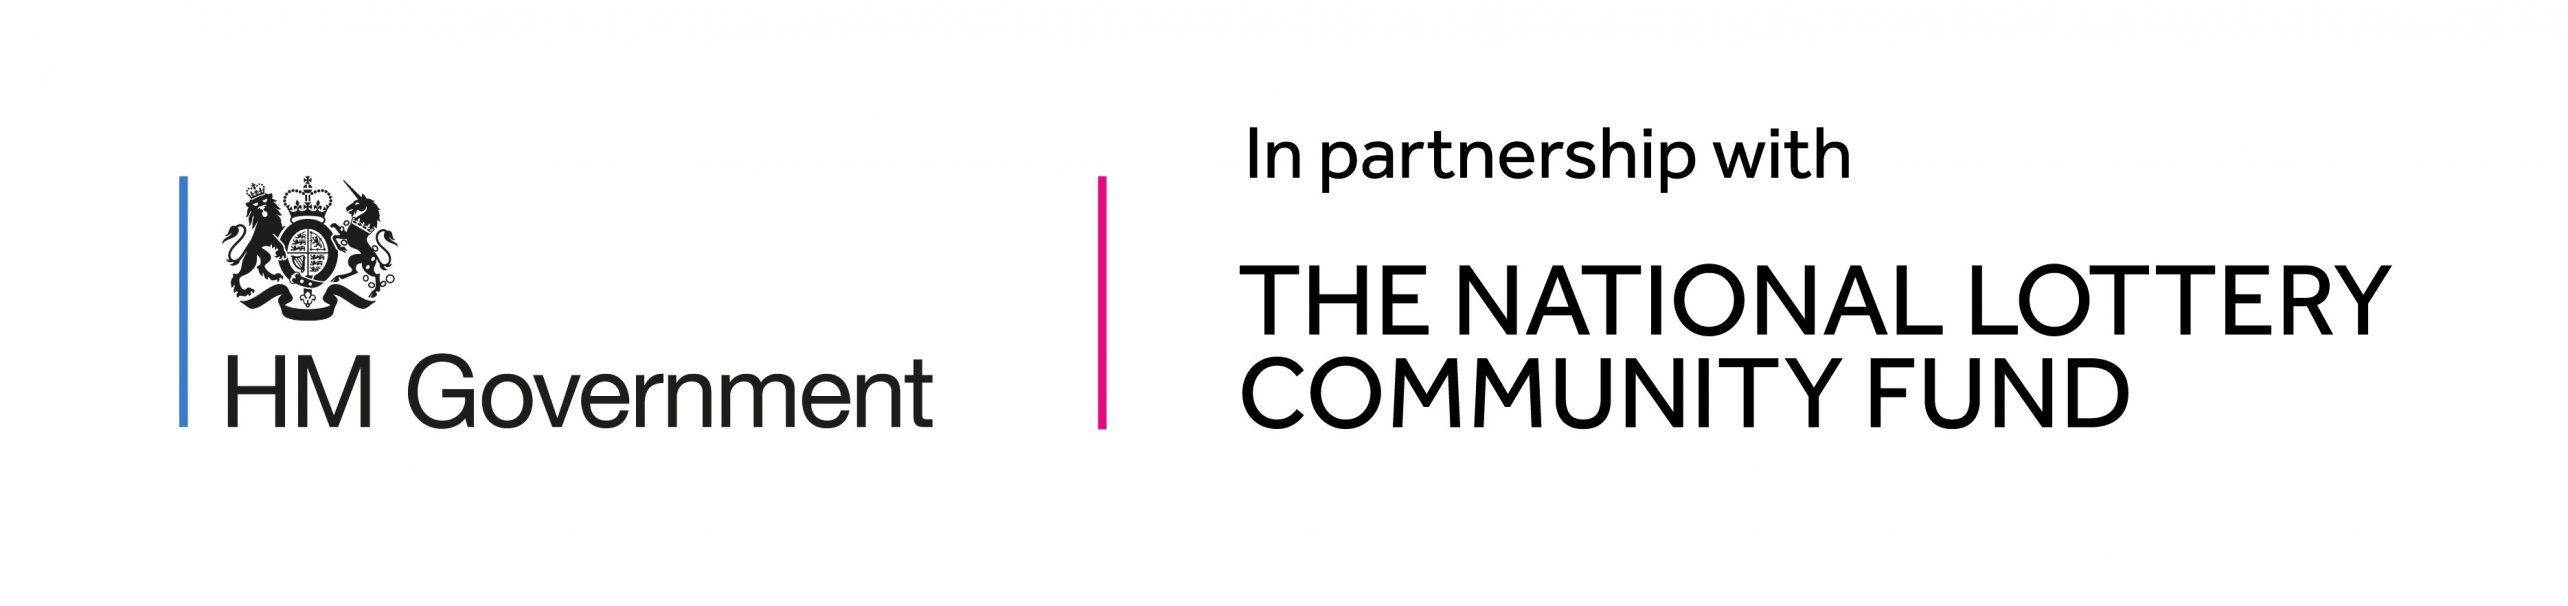 HM Government in partnership with The National Lottery Community Fund Logo